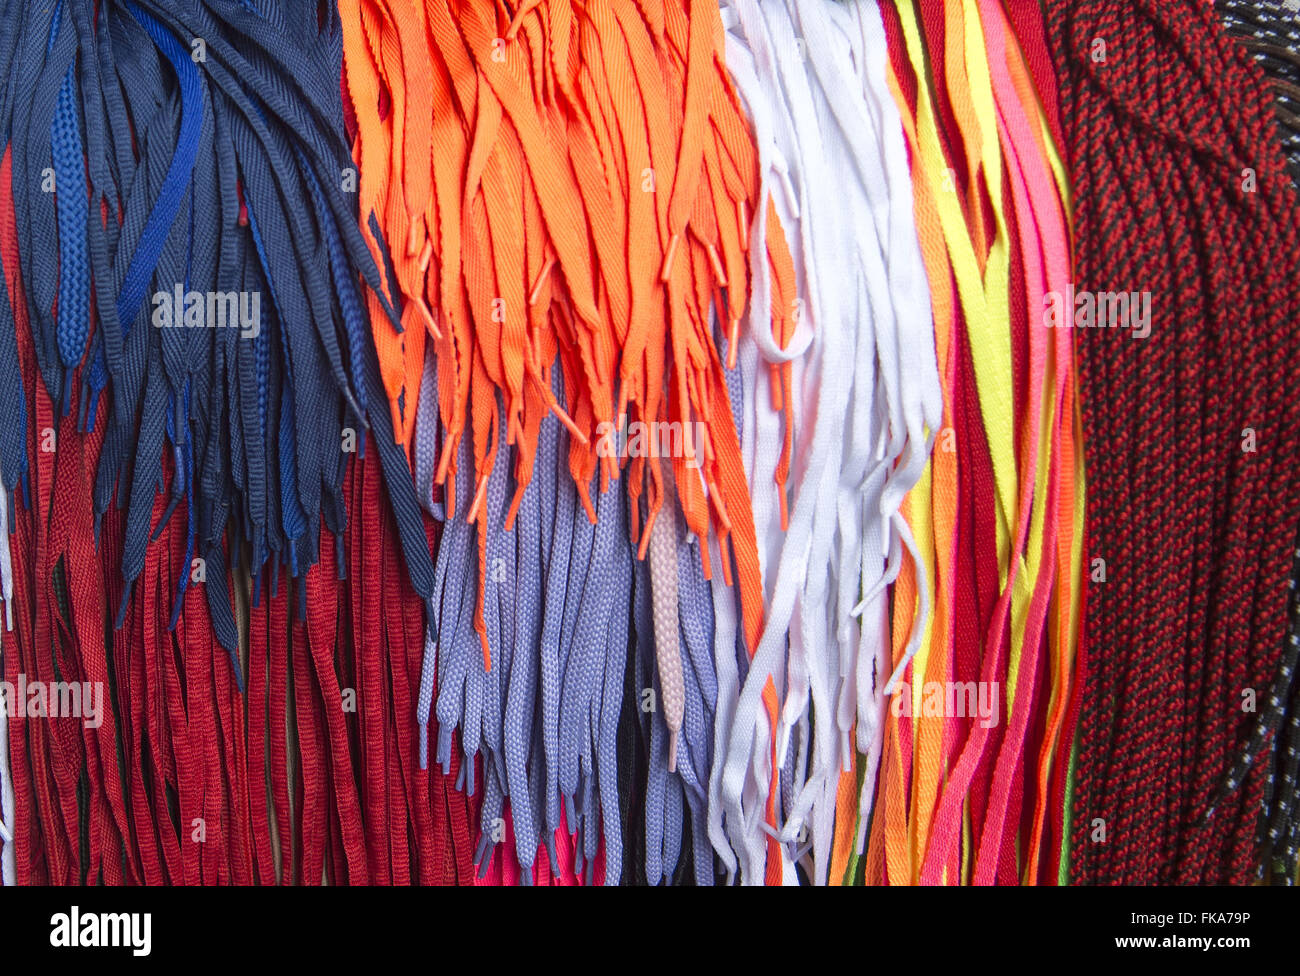 Trade laces and straps for footwear - Stock Image